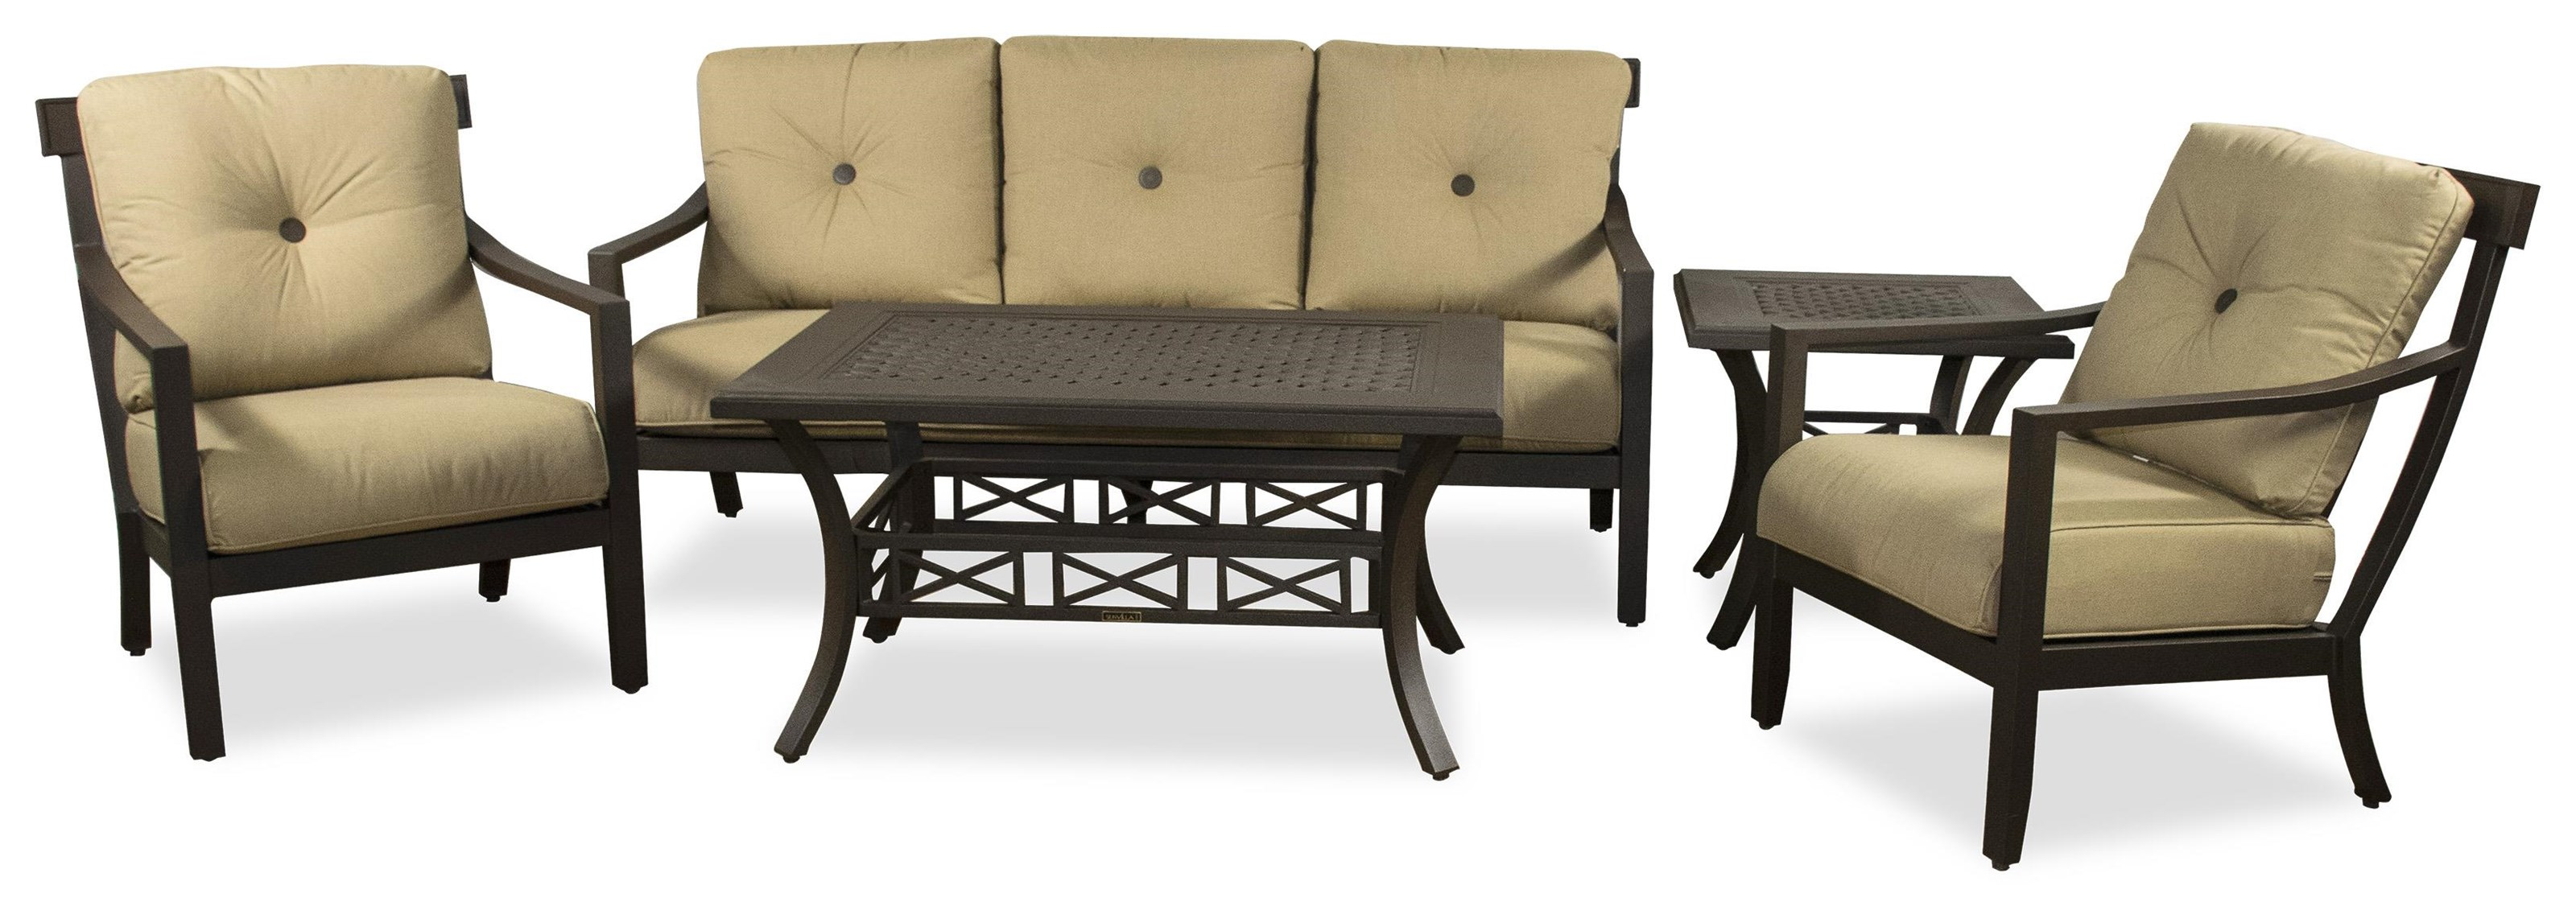 Sofa, 2 Chairs, End Table, Cocktail Table